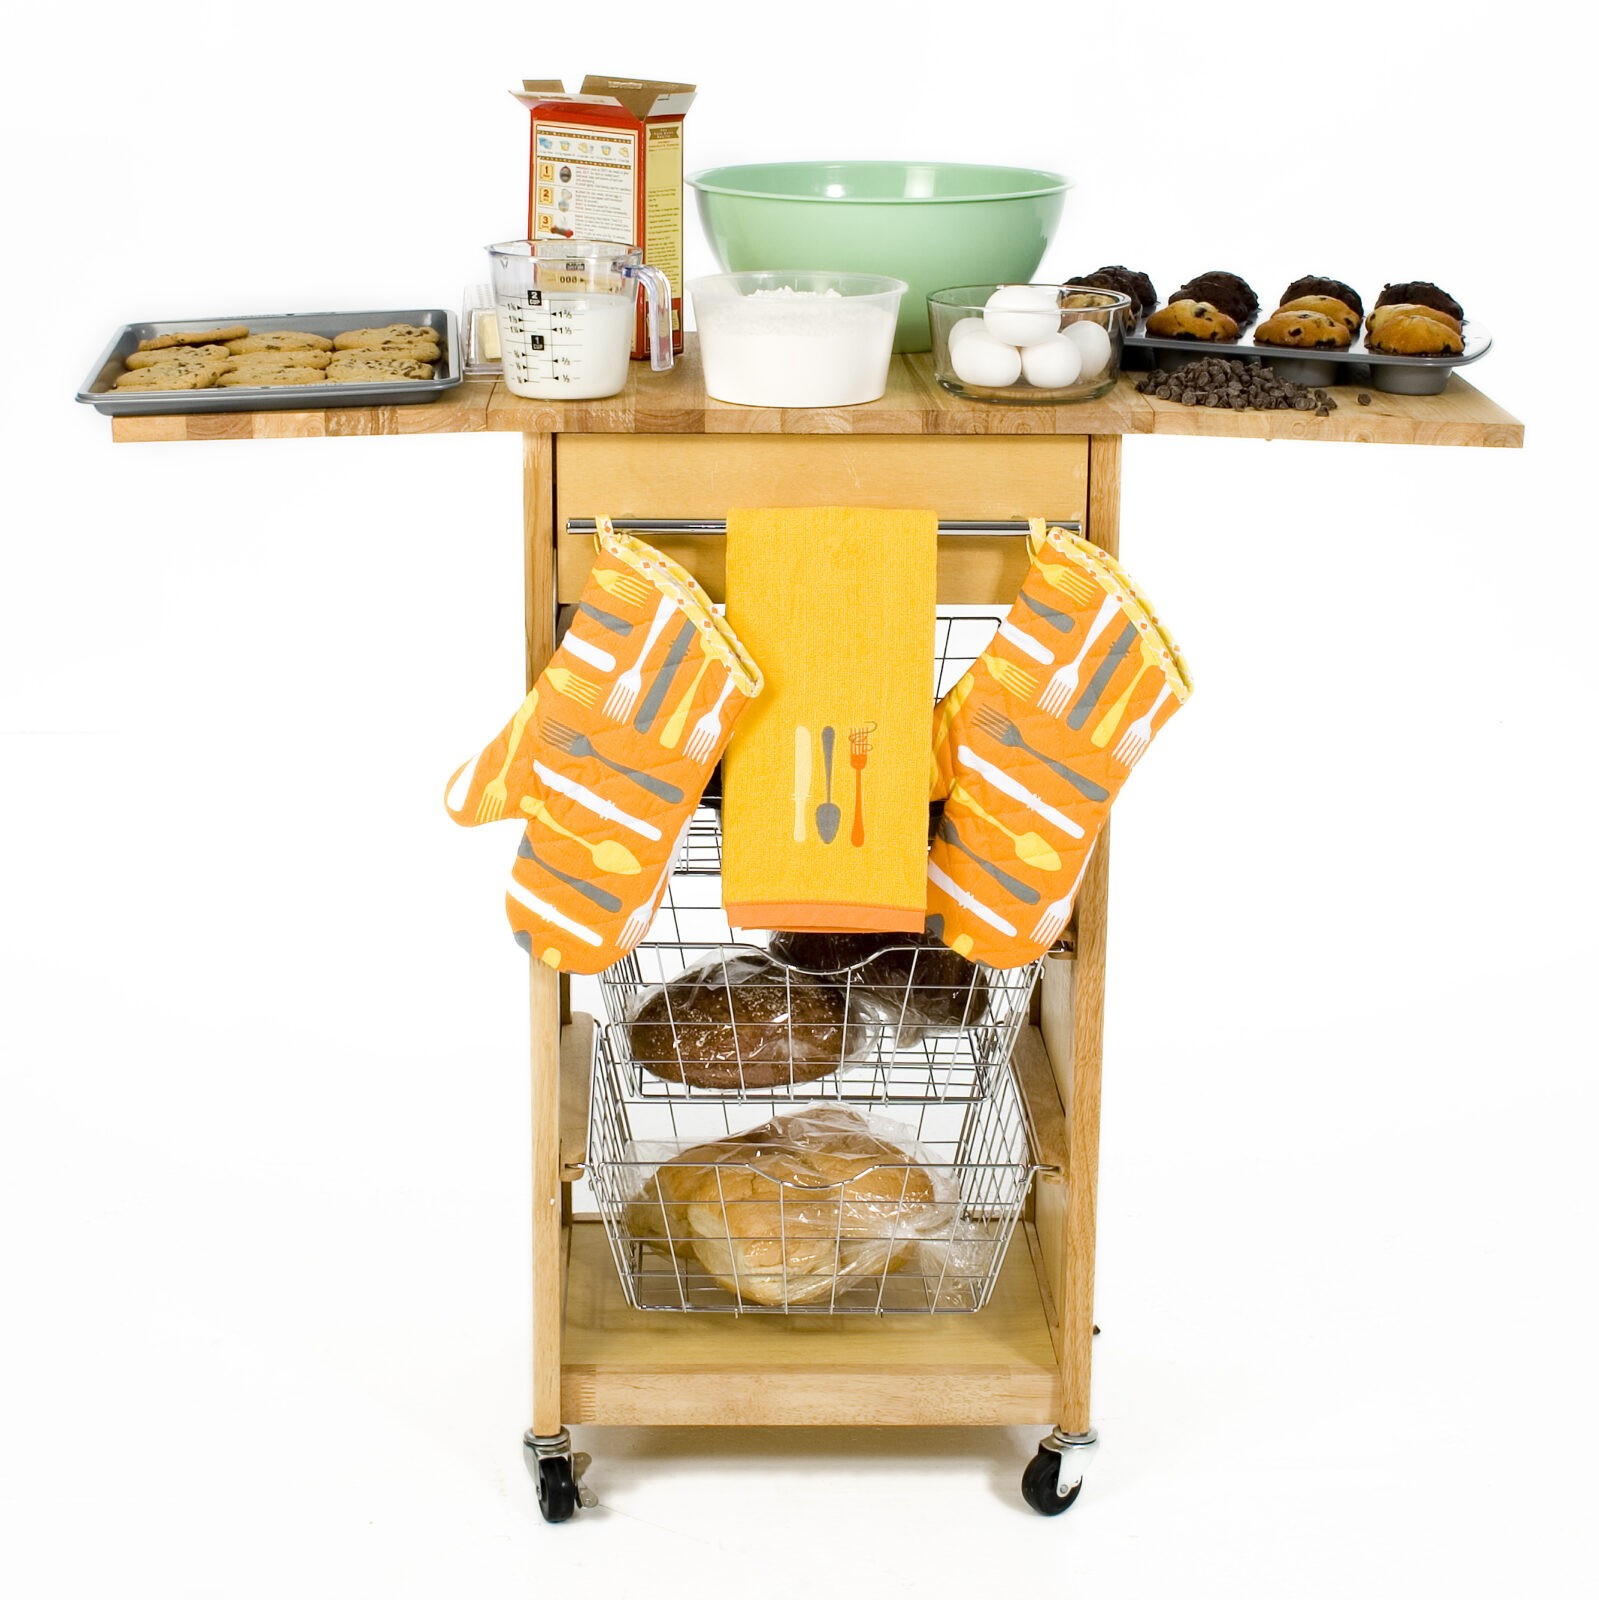 Portable or rolling kitchen islands are great for extra storage and counter space.